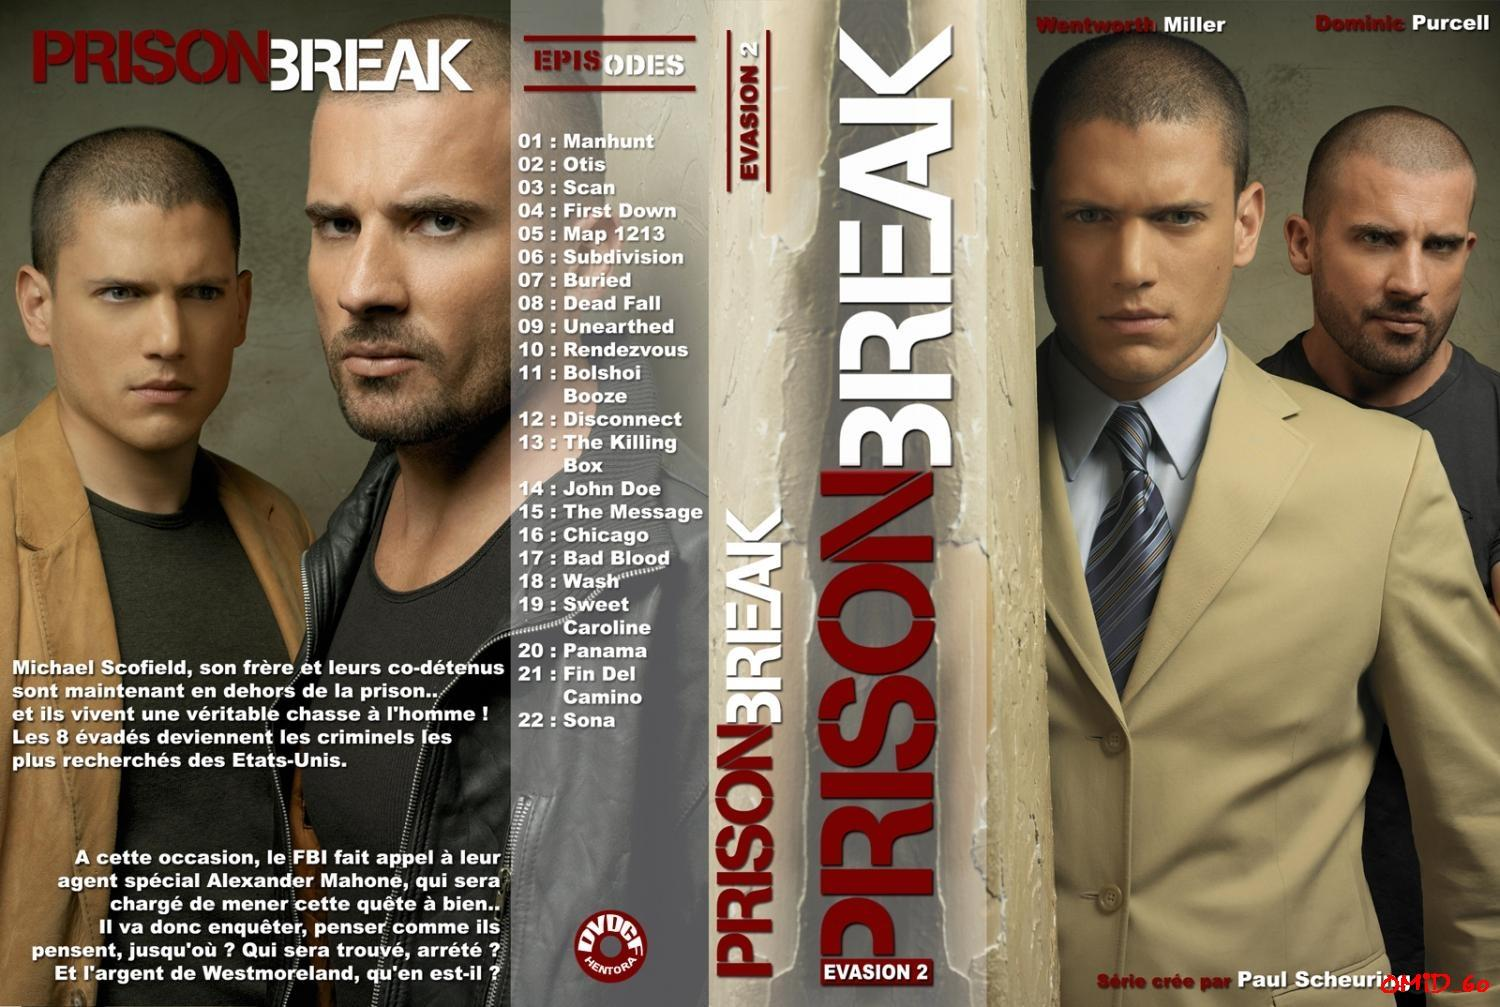 Prison Break Season 2, Vượt Ngục Season 2